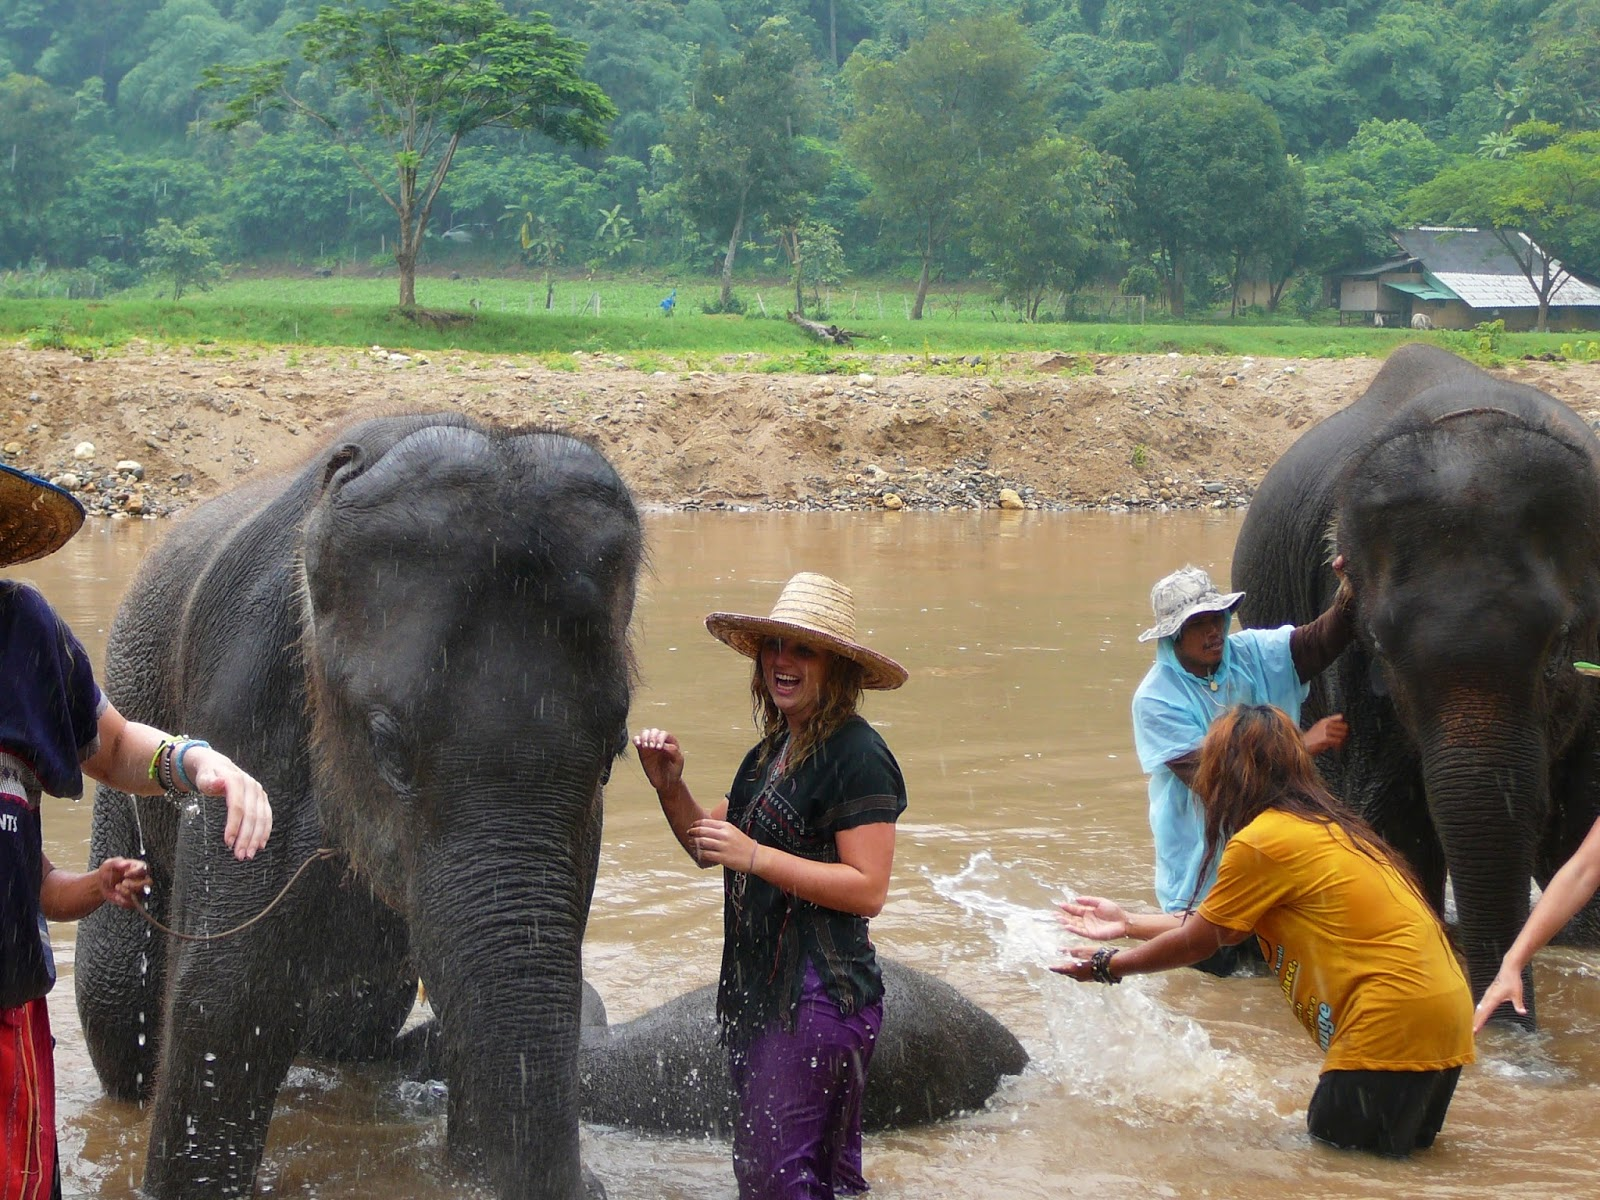 Washing elephants in Chaing Mai, Thailand